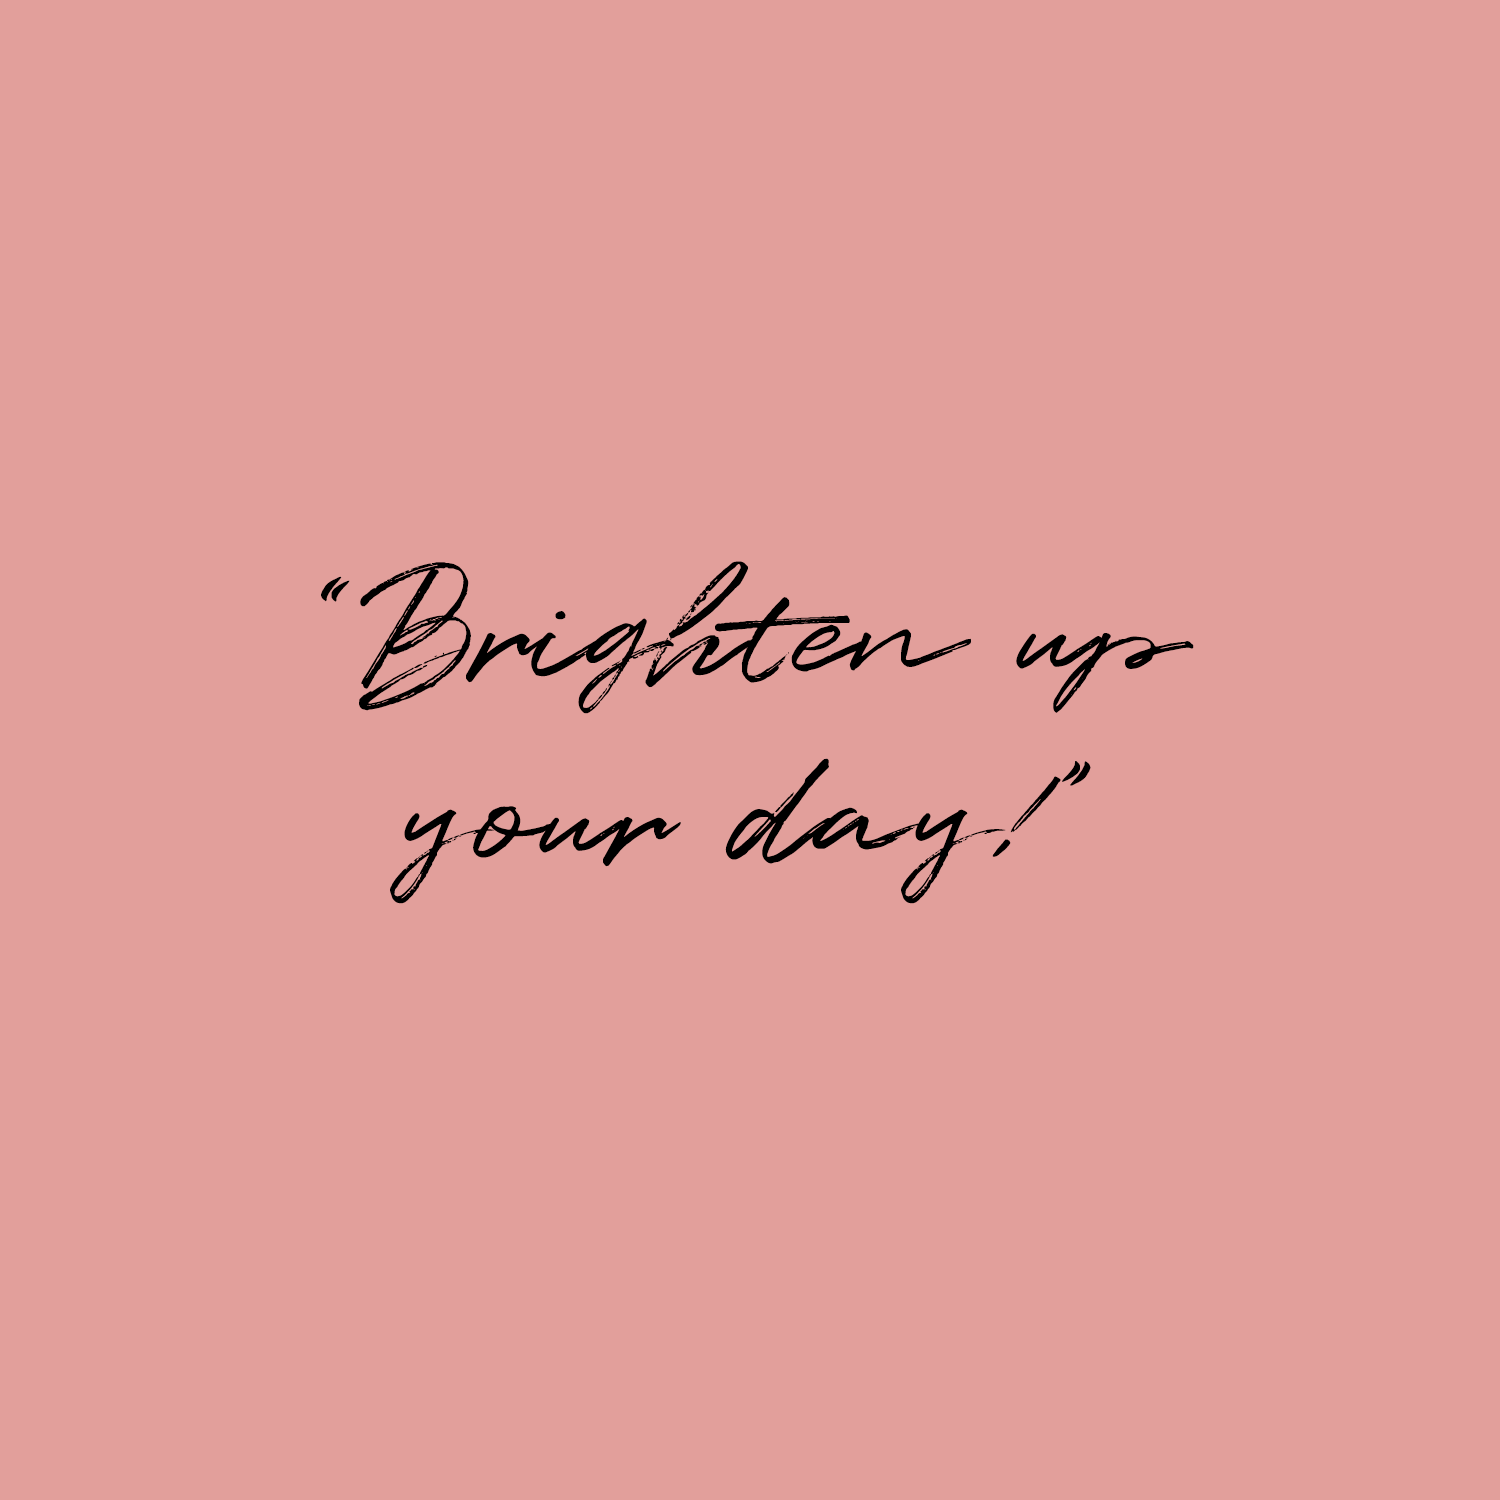 Brighten up your day quote on blush pink